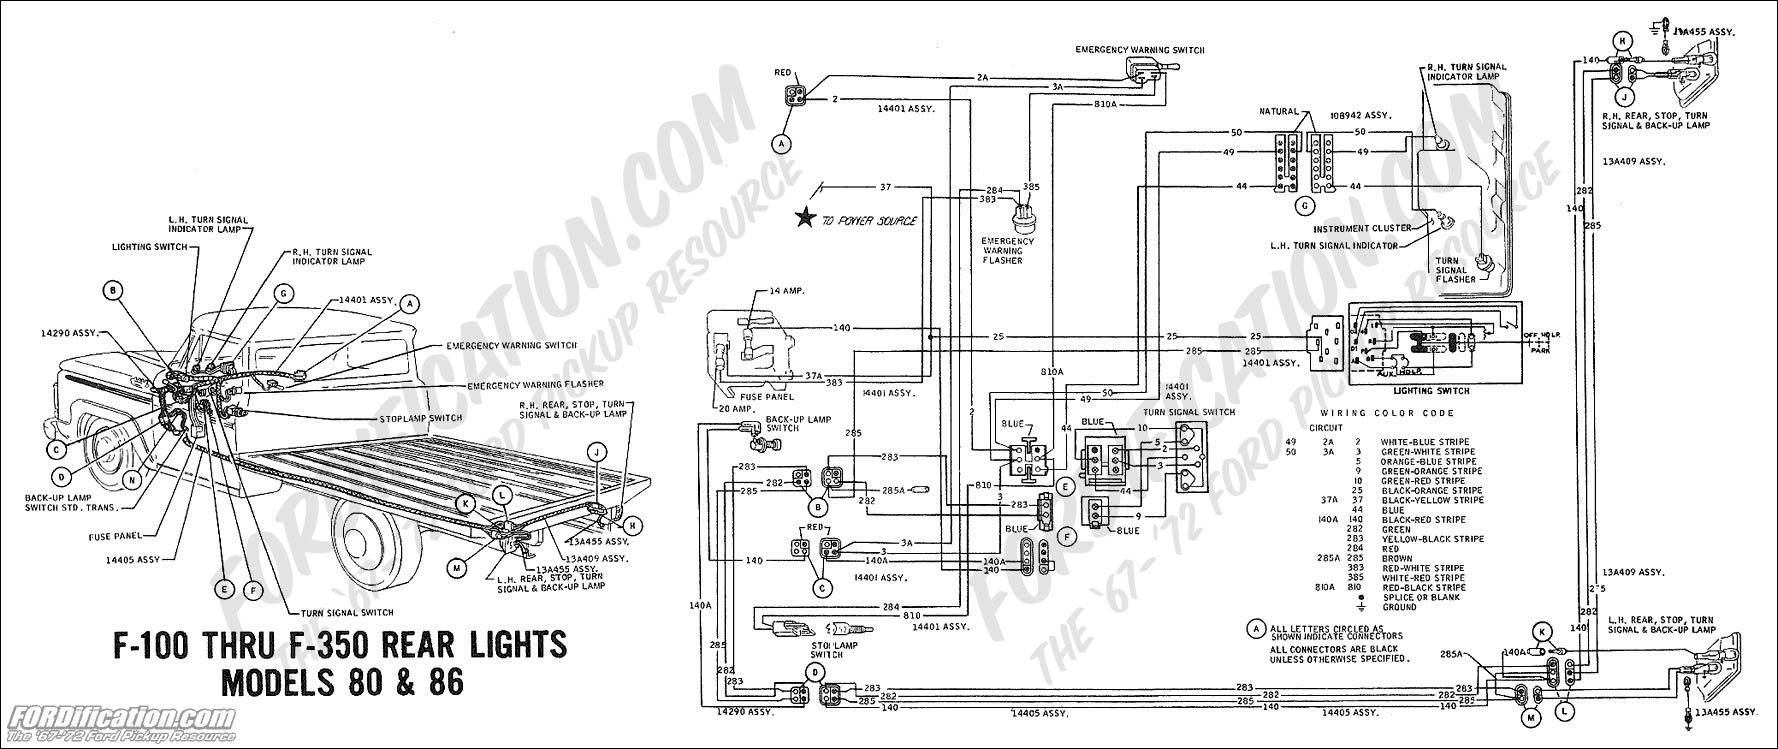 wiring_69rearlights mdls80 86 1994 f700 wiring diagram on 1994 download wirning diagrams 1979 Corvette Fuse Box Diagram at gsmportal.co